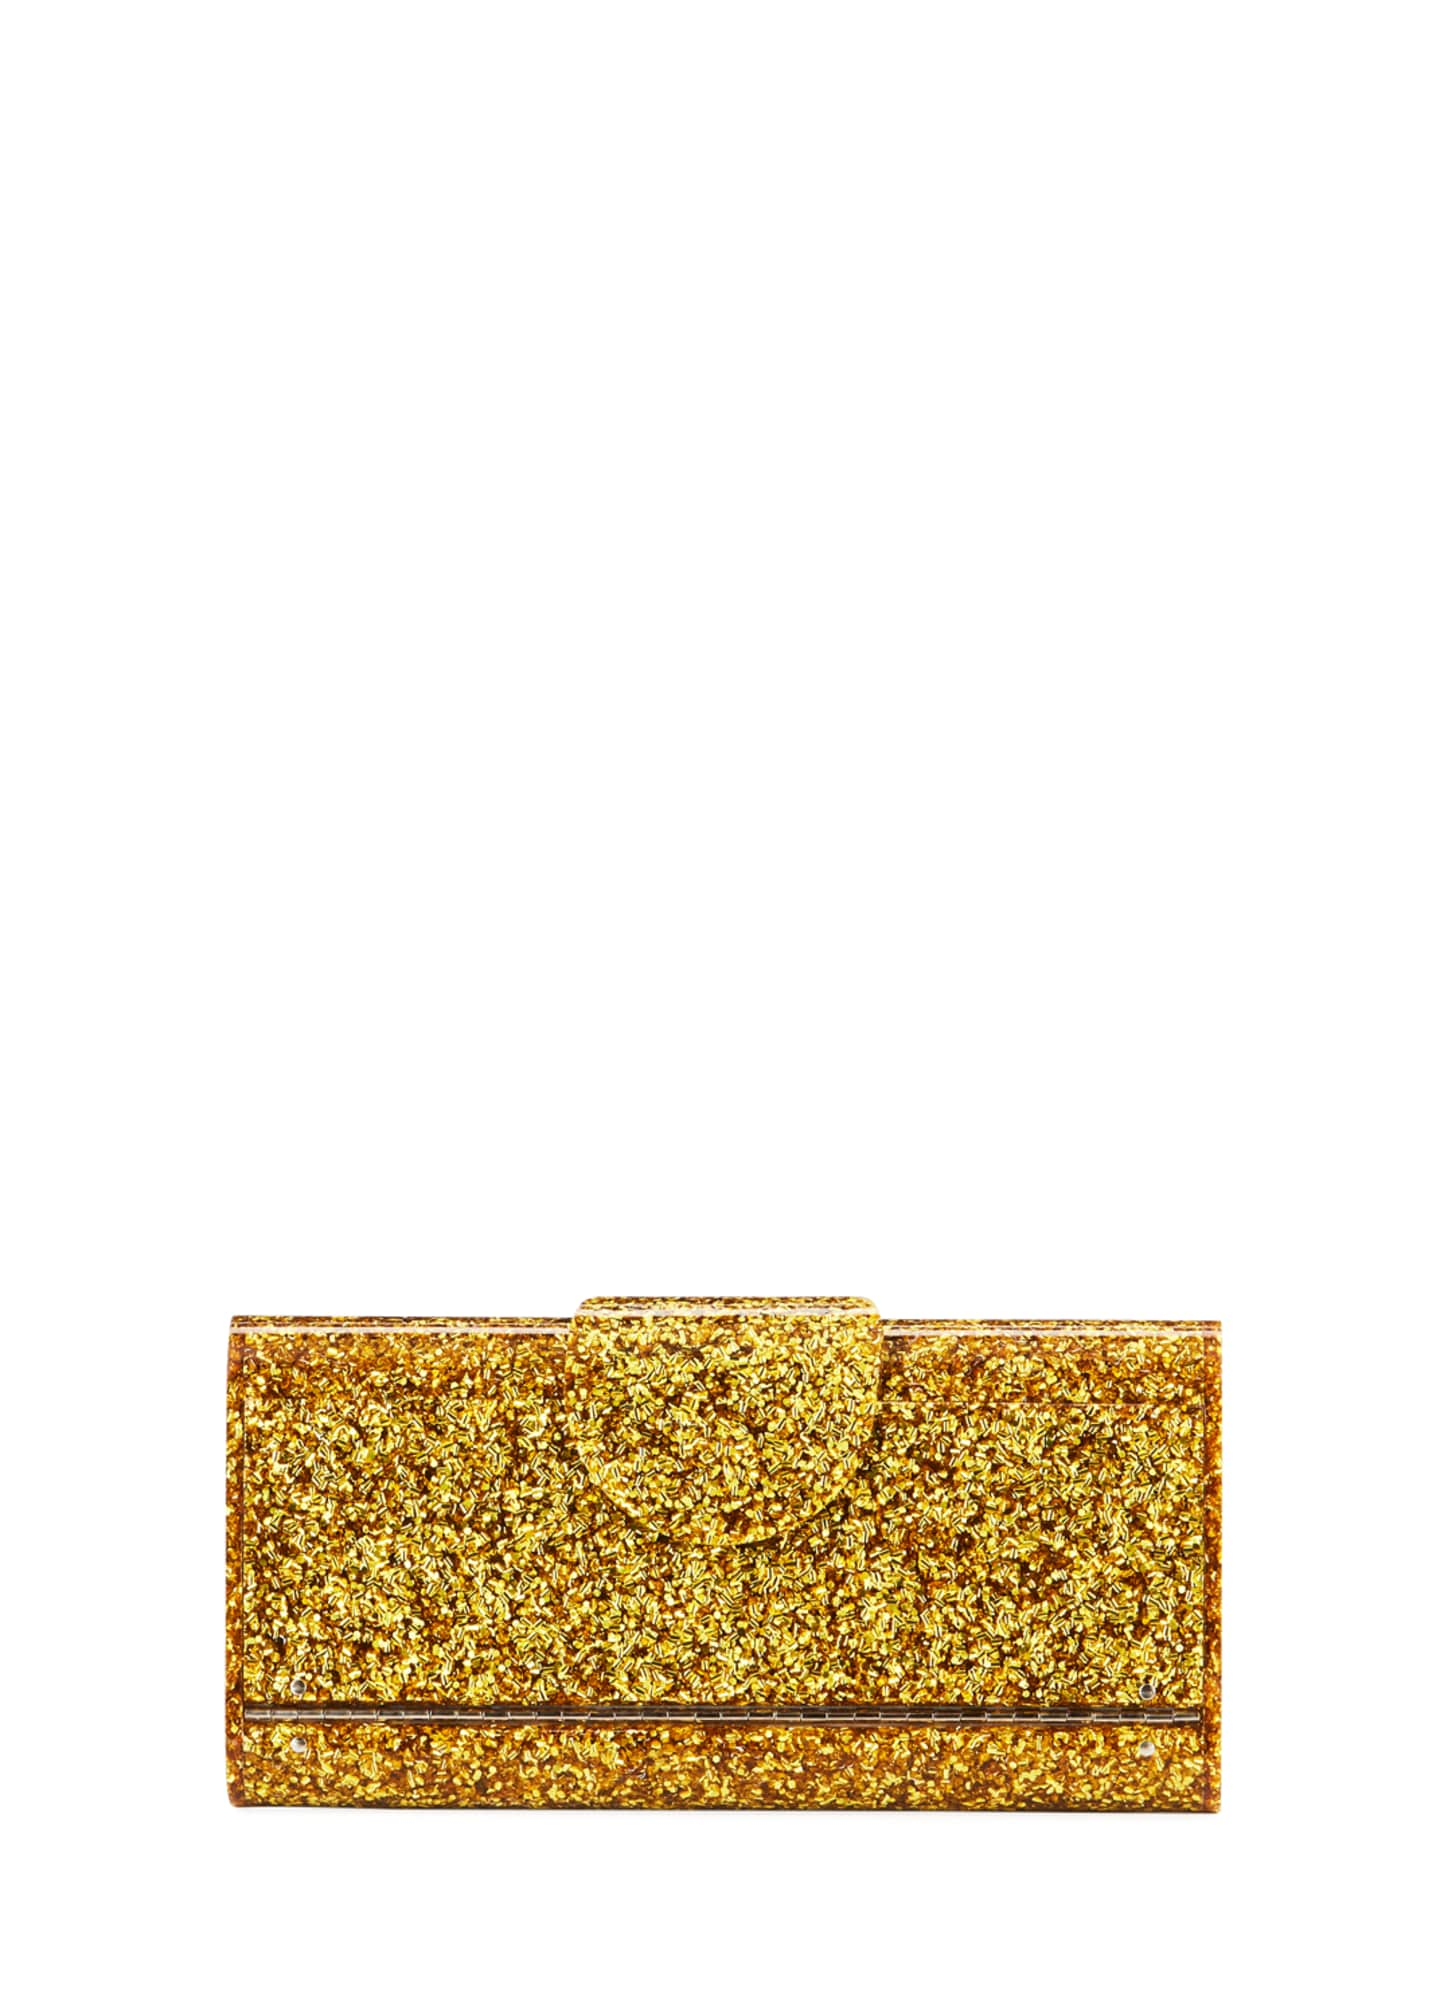 Edie Parker Large Lara Glitter Iceless Clutch Bag